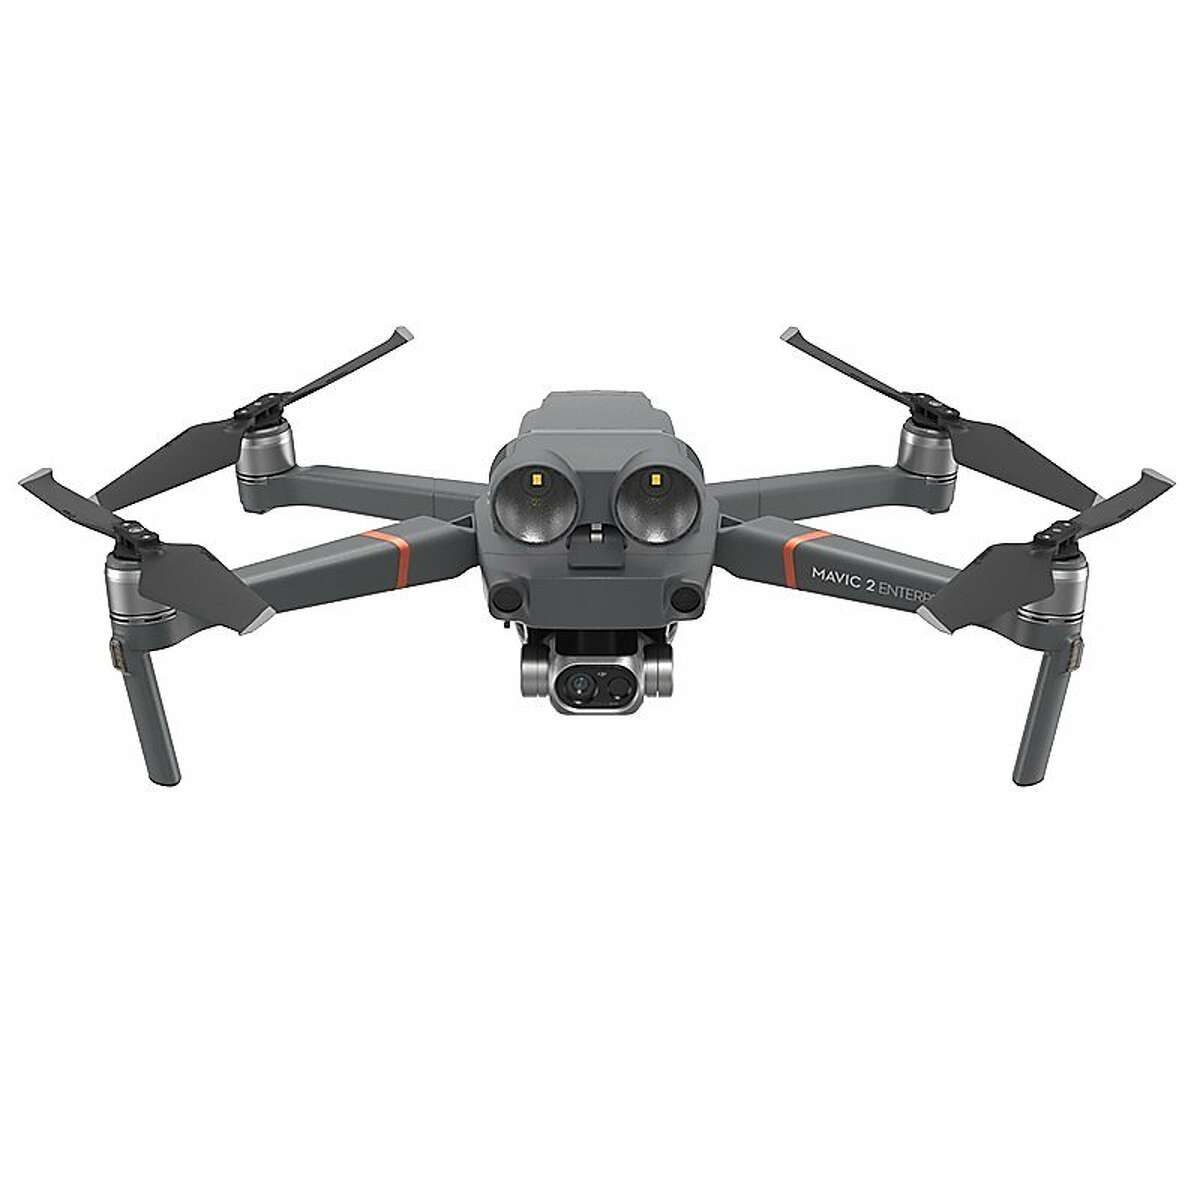 The Fremont Police Department started a joint program with the Fremont Fire Department to use drones in critical incidents, including missing people, mass casualties and other rescue situations.